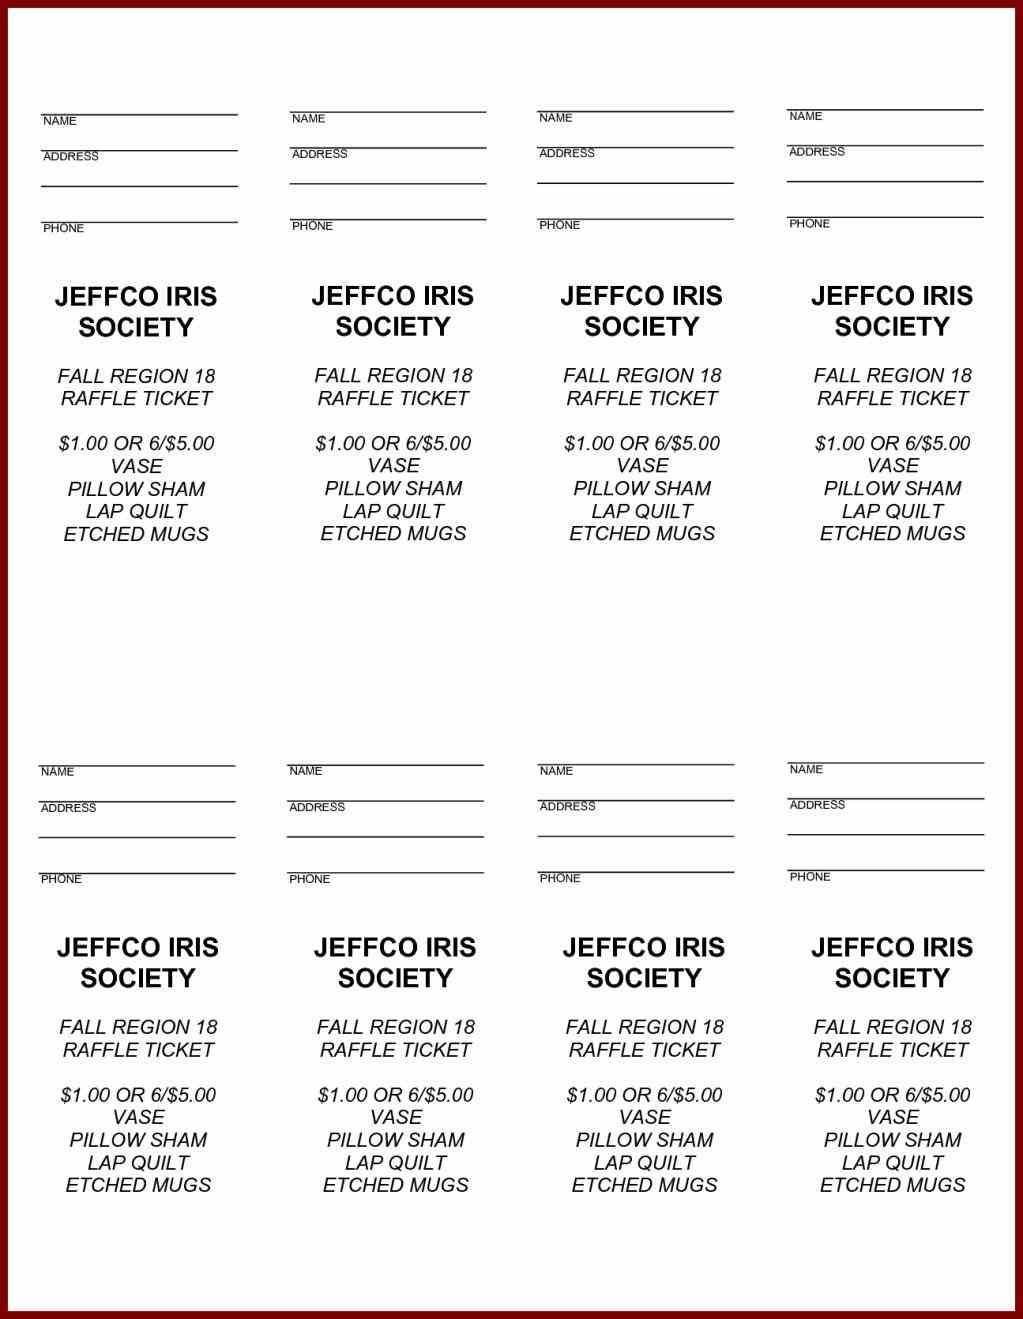 Free Printable Raffle Ticket Template Easytouse Free Raffle Ticket - Free Printable Raffle Ticket Template